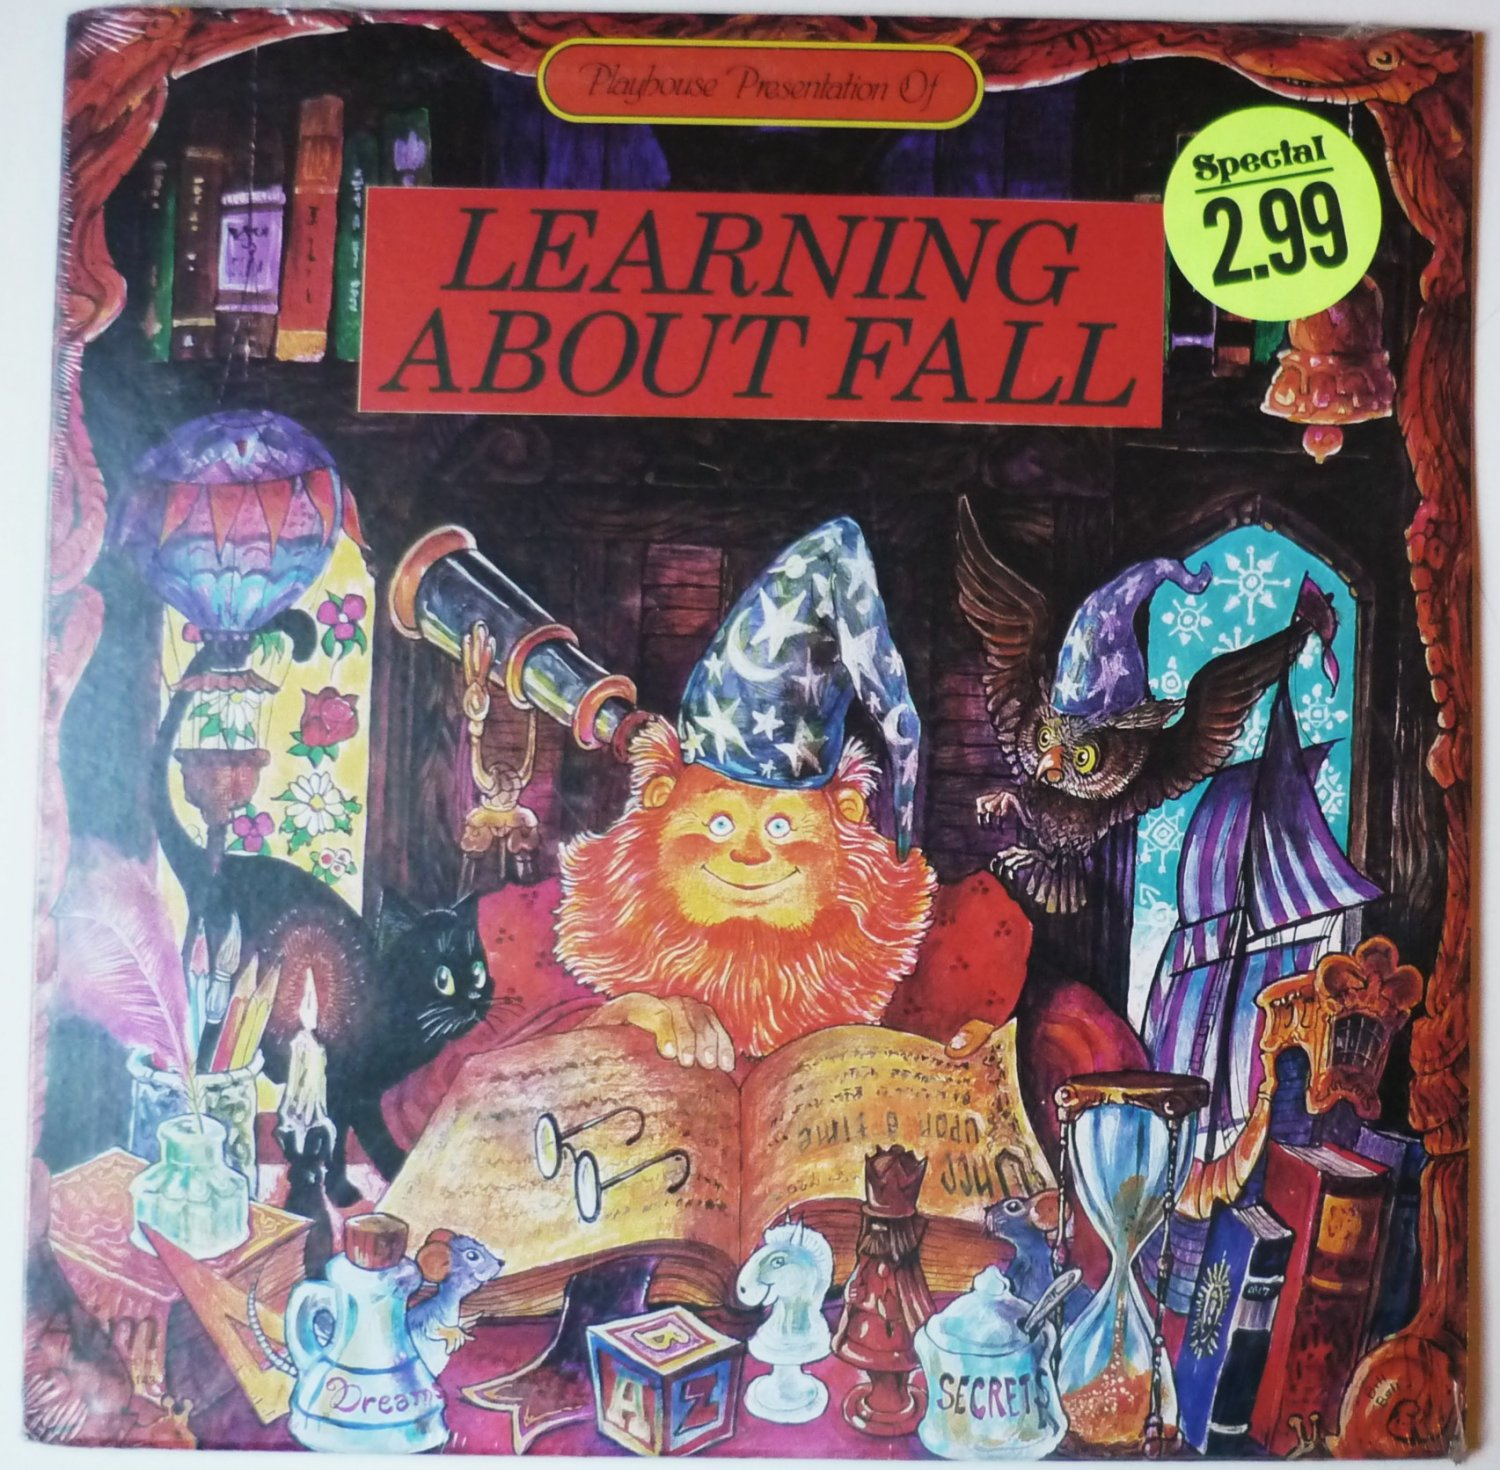 New: Playhouse Presentation of Learning About Fall  lp